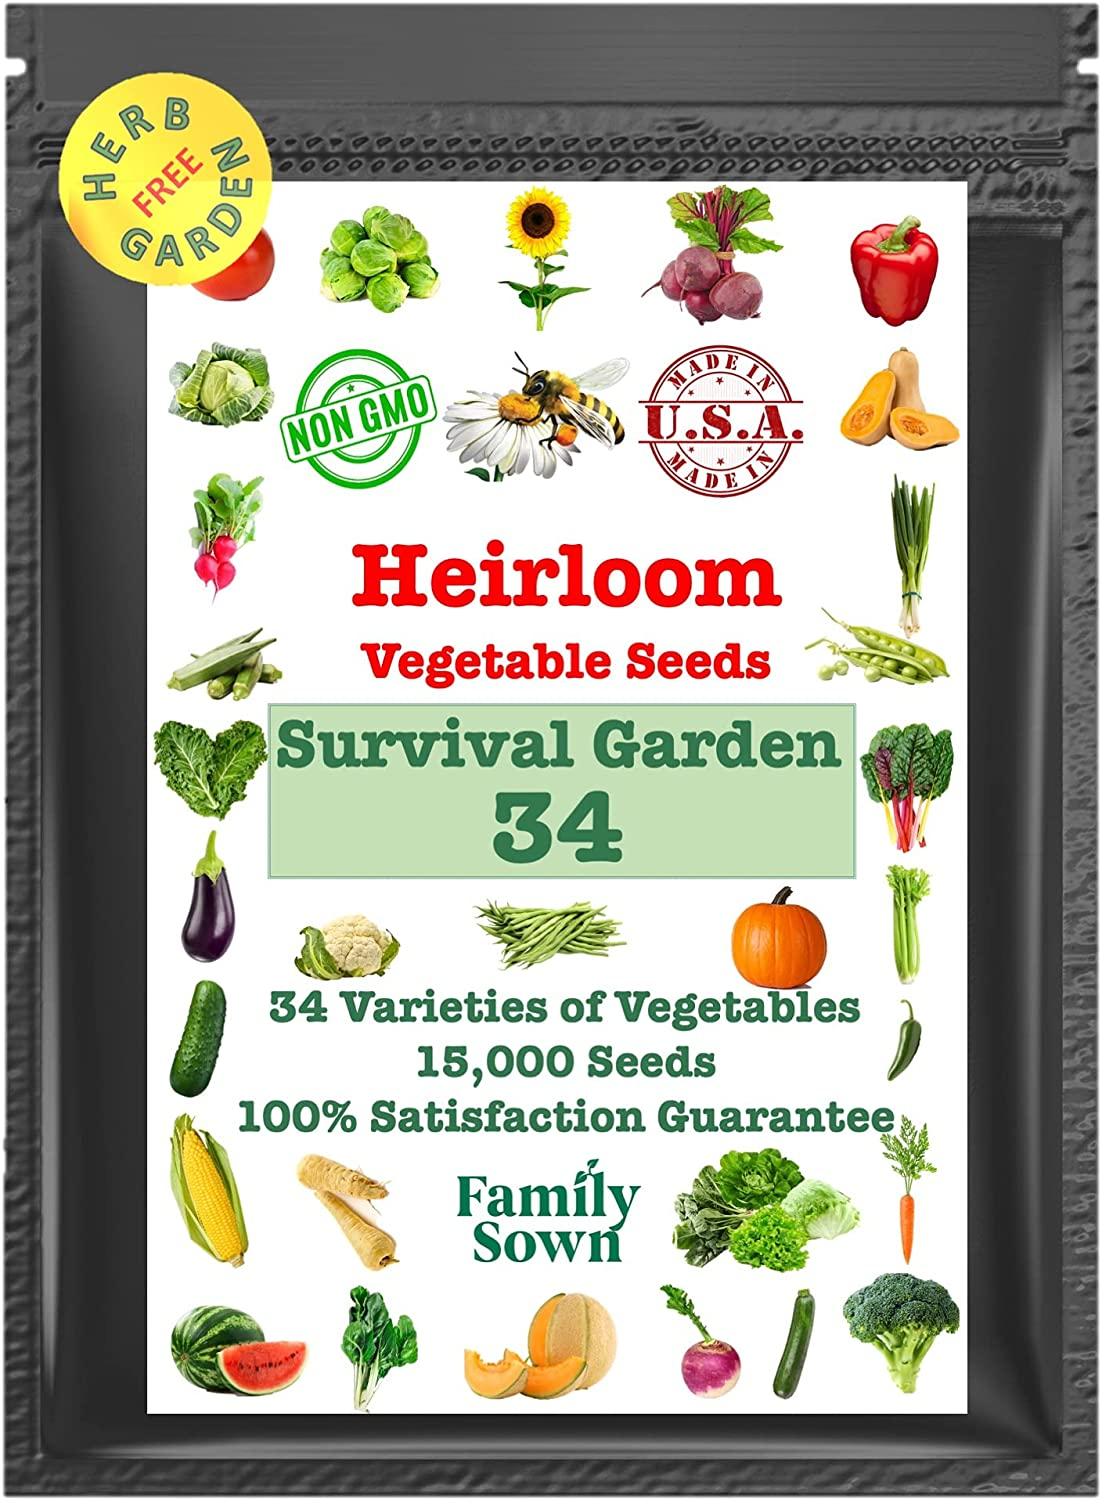 Family Sown Survival Seeds – 15,000 Non GMO Heirloom Seeds, Naturally Grown Herb Seeds & Seeds for Planting Vegetables and Fruits, Perfect Vegetable Garden Seed Starter Kit